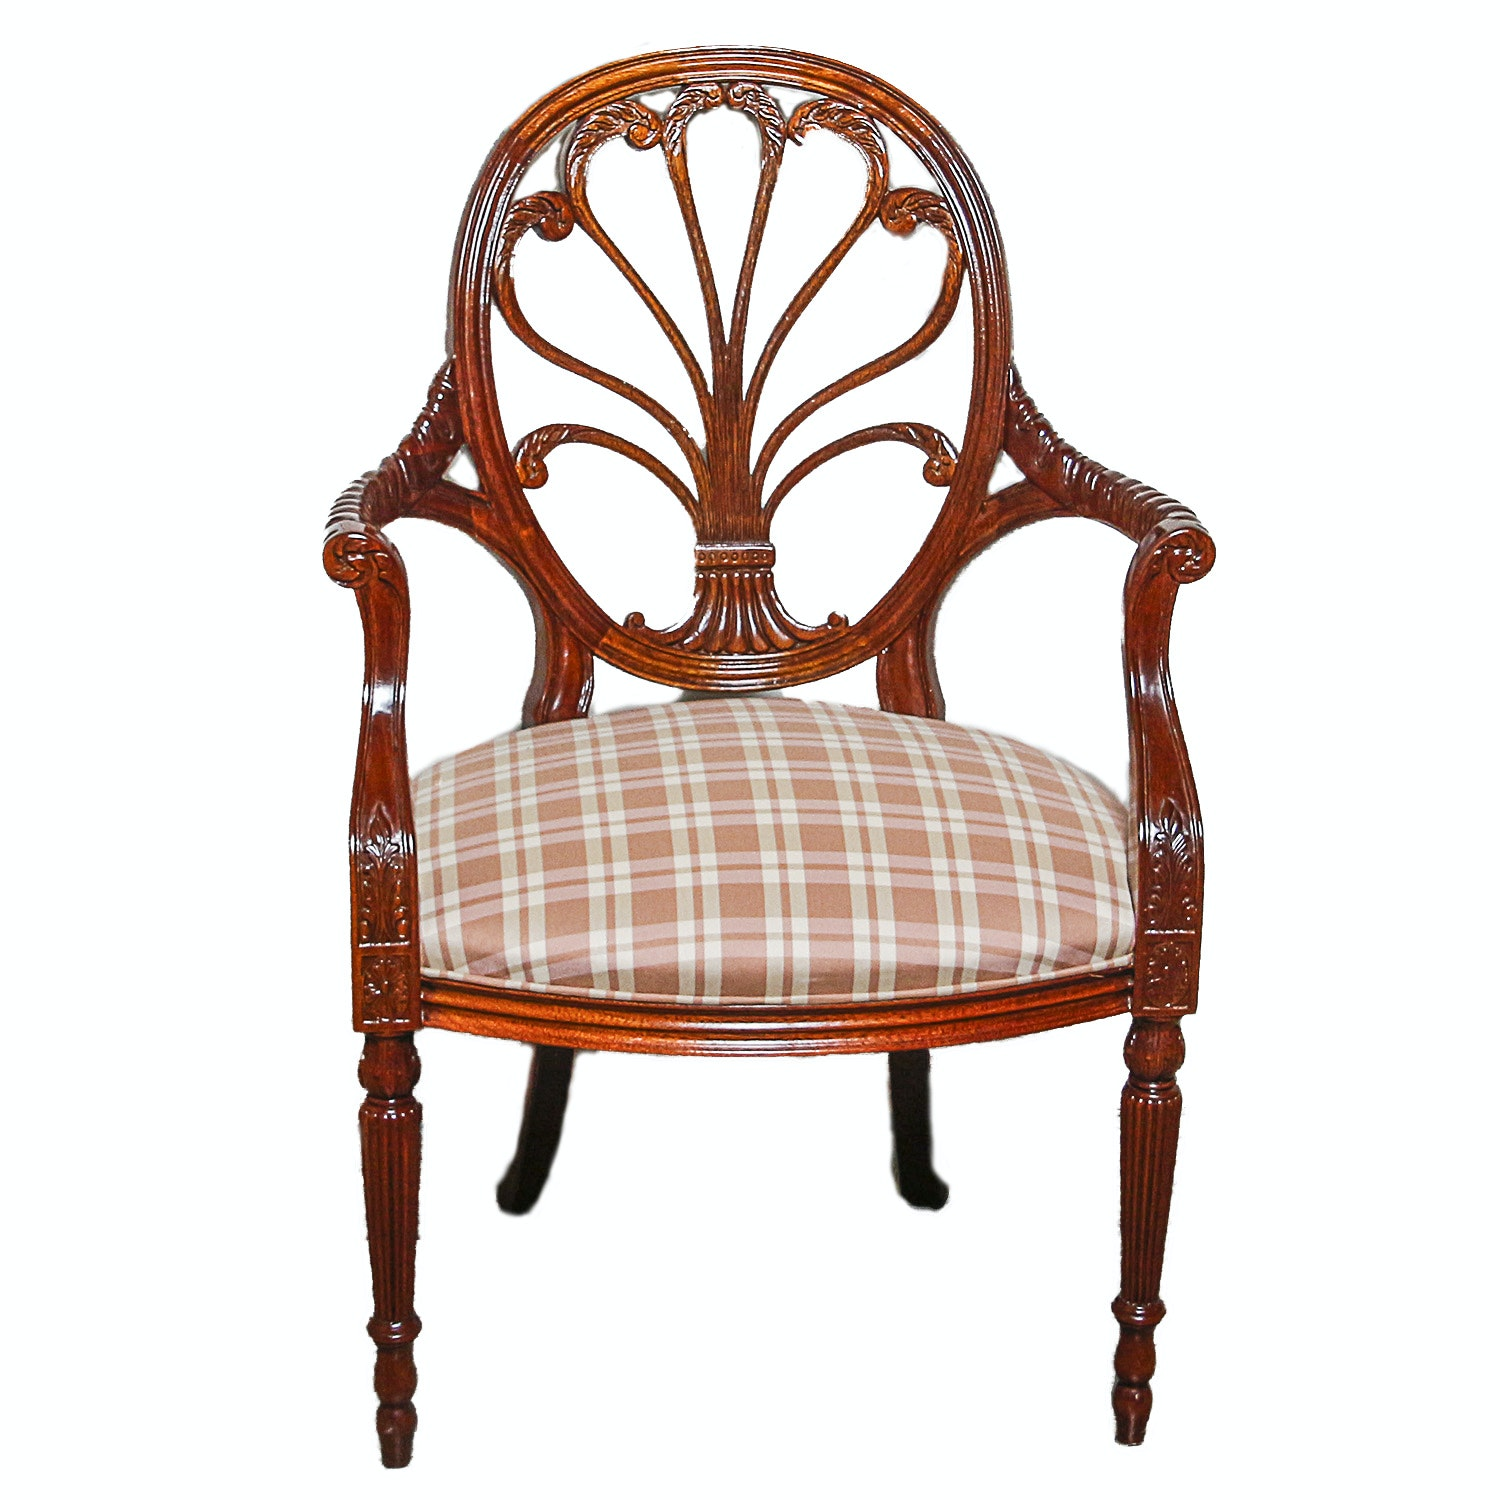 Curled Wheat Stalk Balloon Back Fauteuil